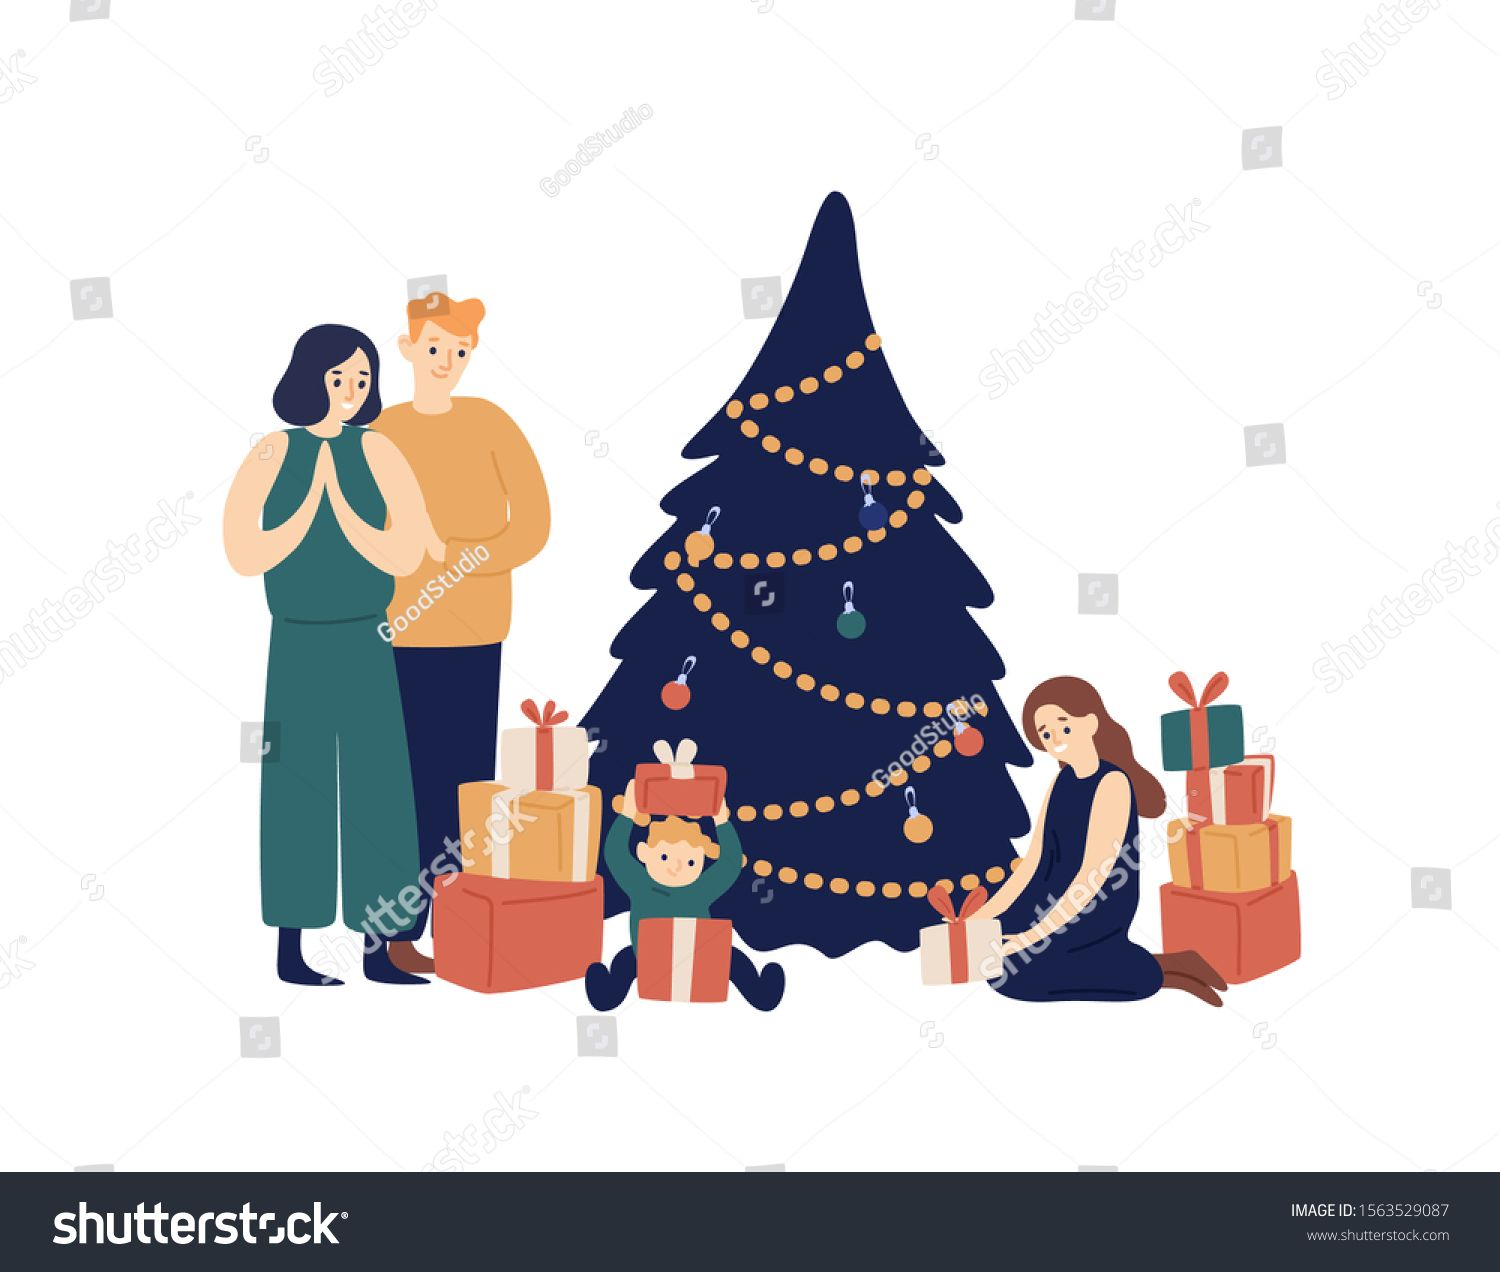 Family And Christmas Tree Flat Vector Illustration Smiling Parents And Children Opening Gifts Under New Family Illustration Family Christmas Tree Illustration